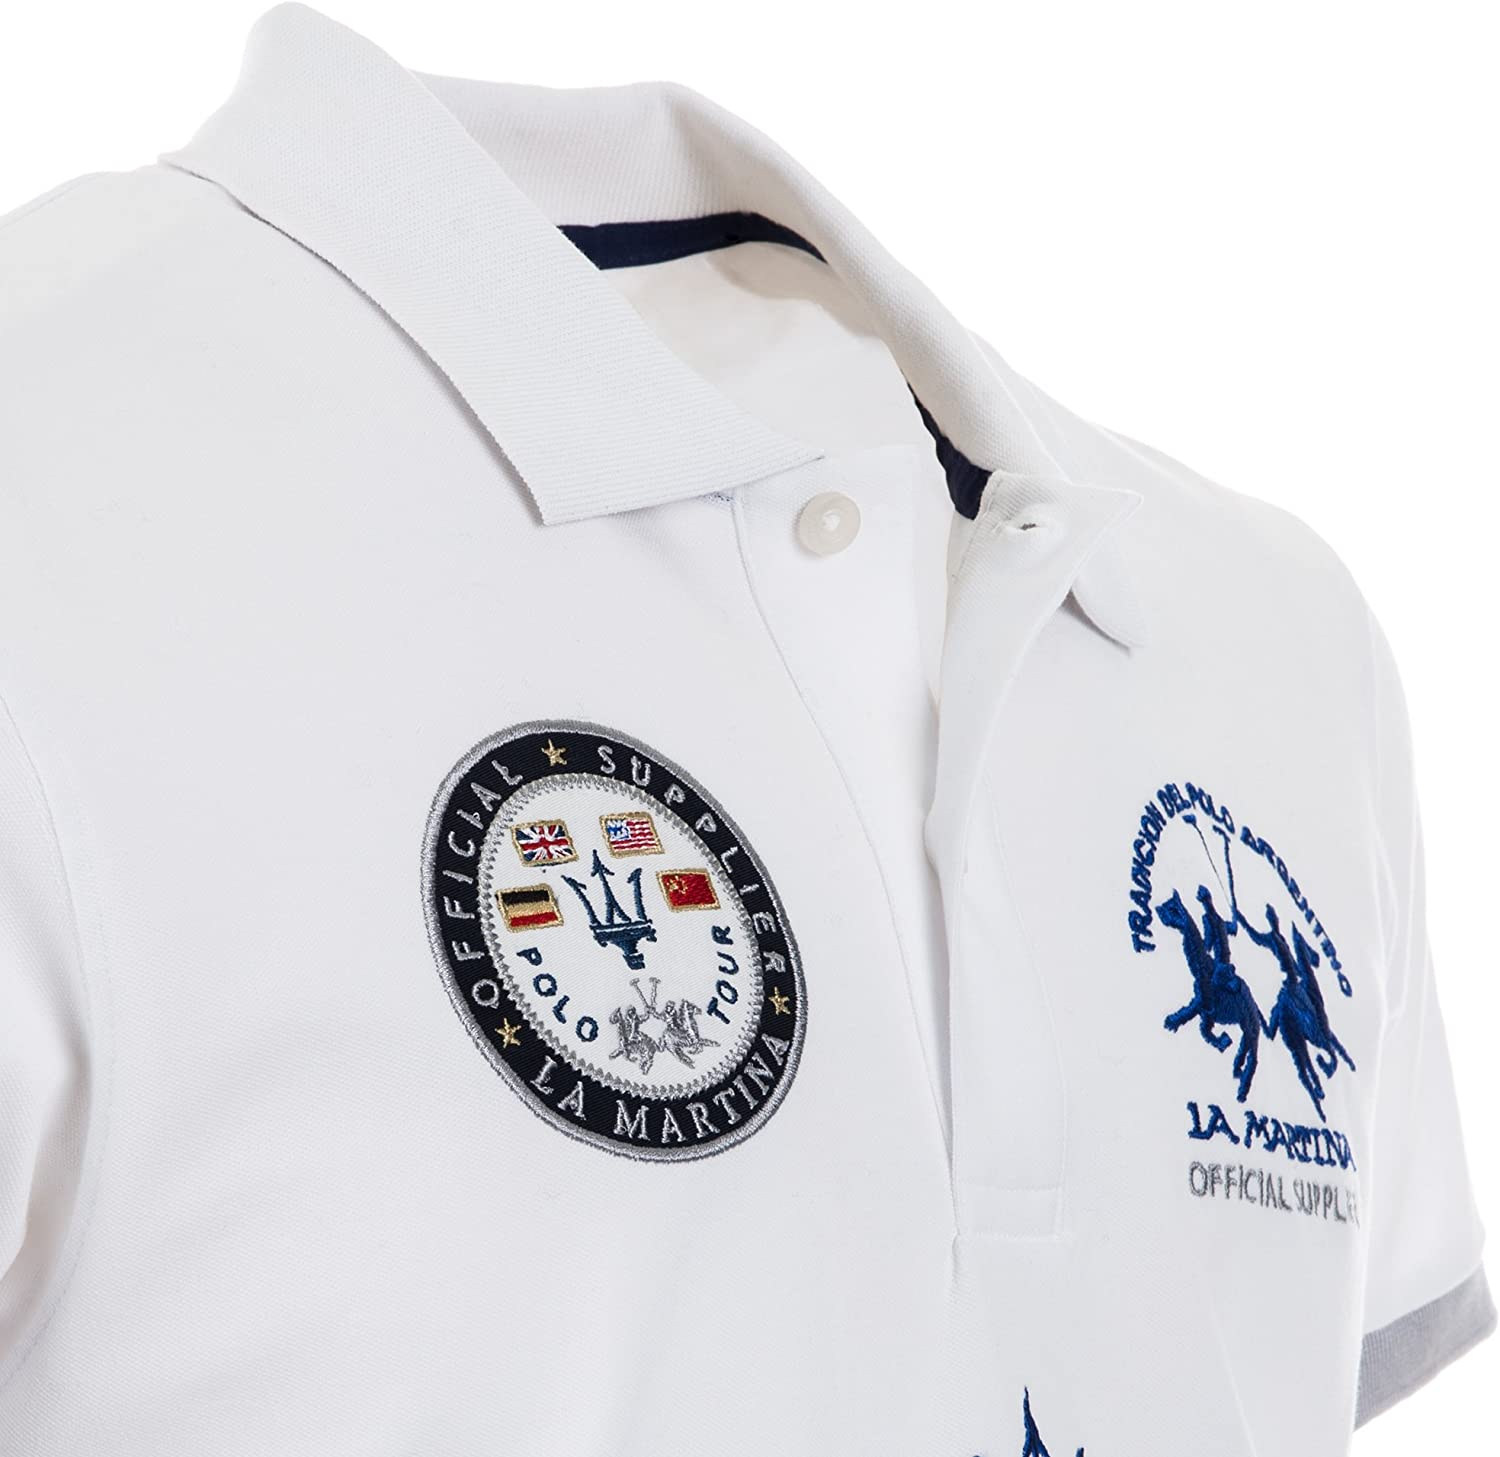 Maserati Polo Team Tour Blanca Bianco XL: Amazon.es: Ropa y accesorios